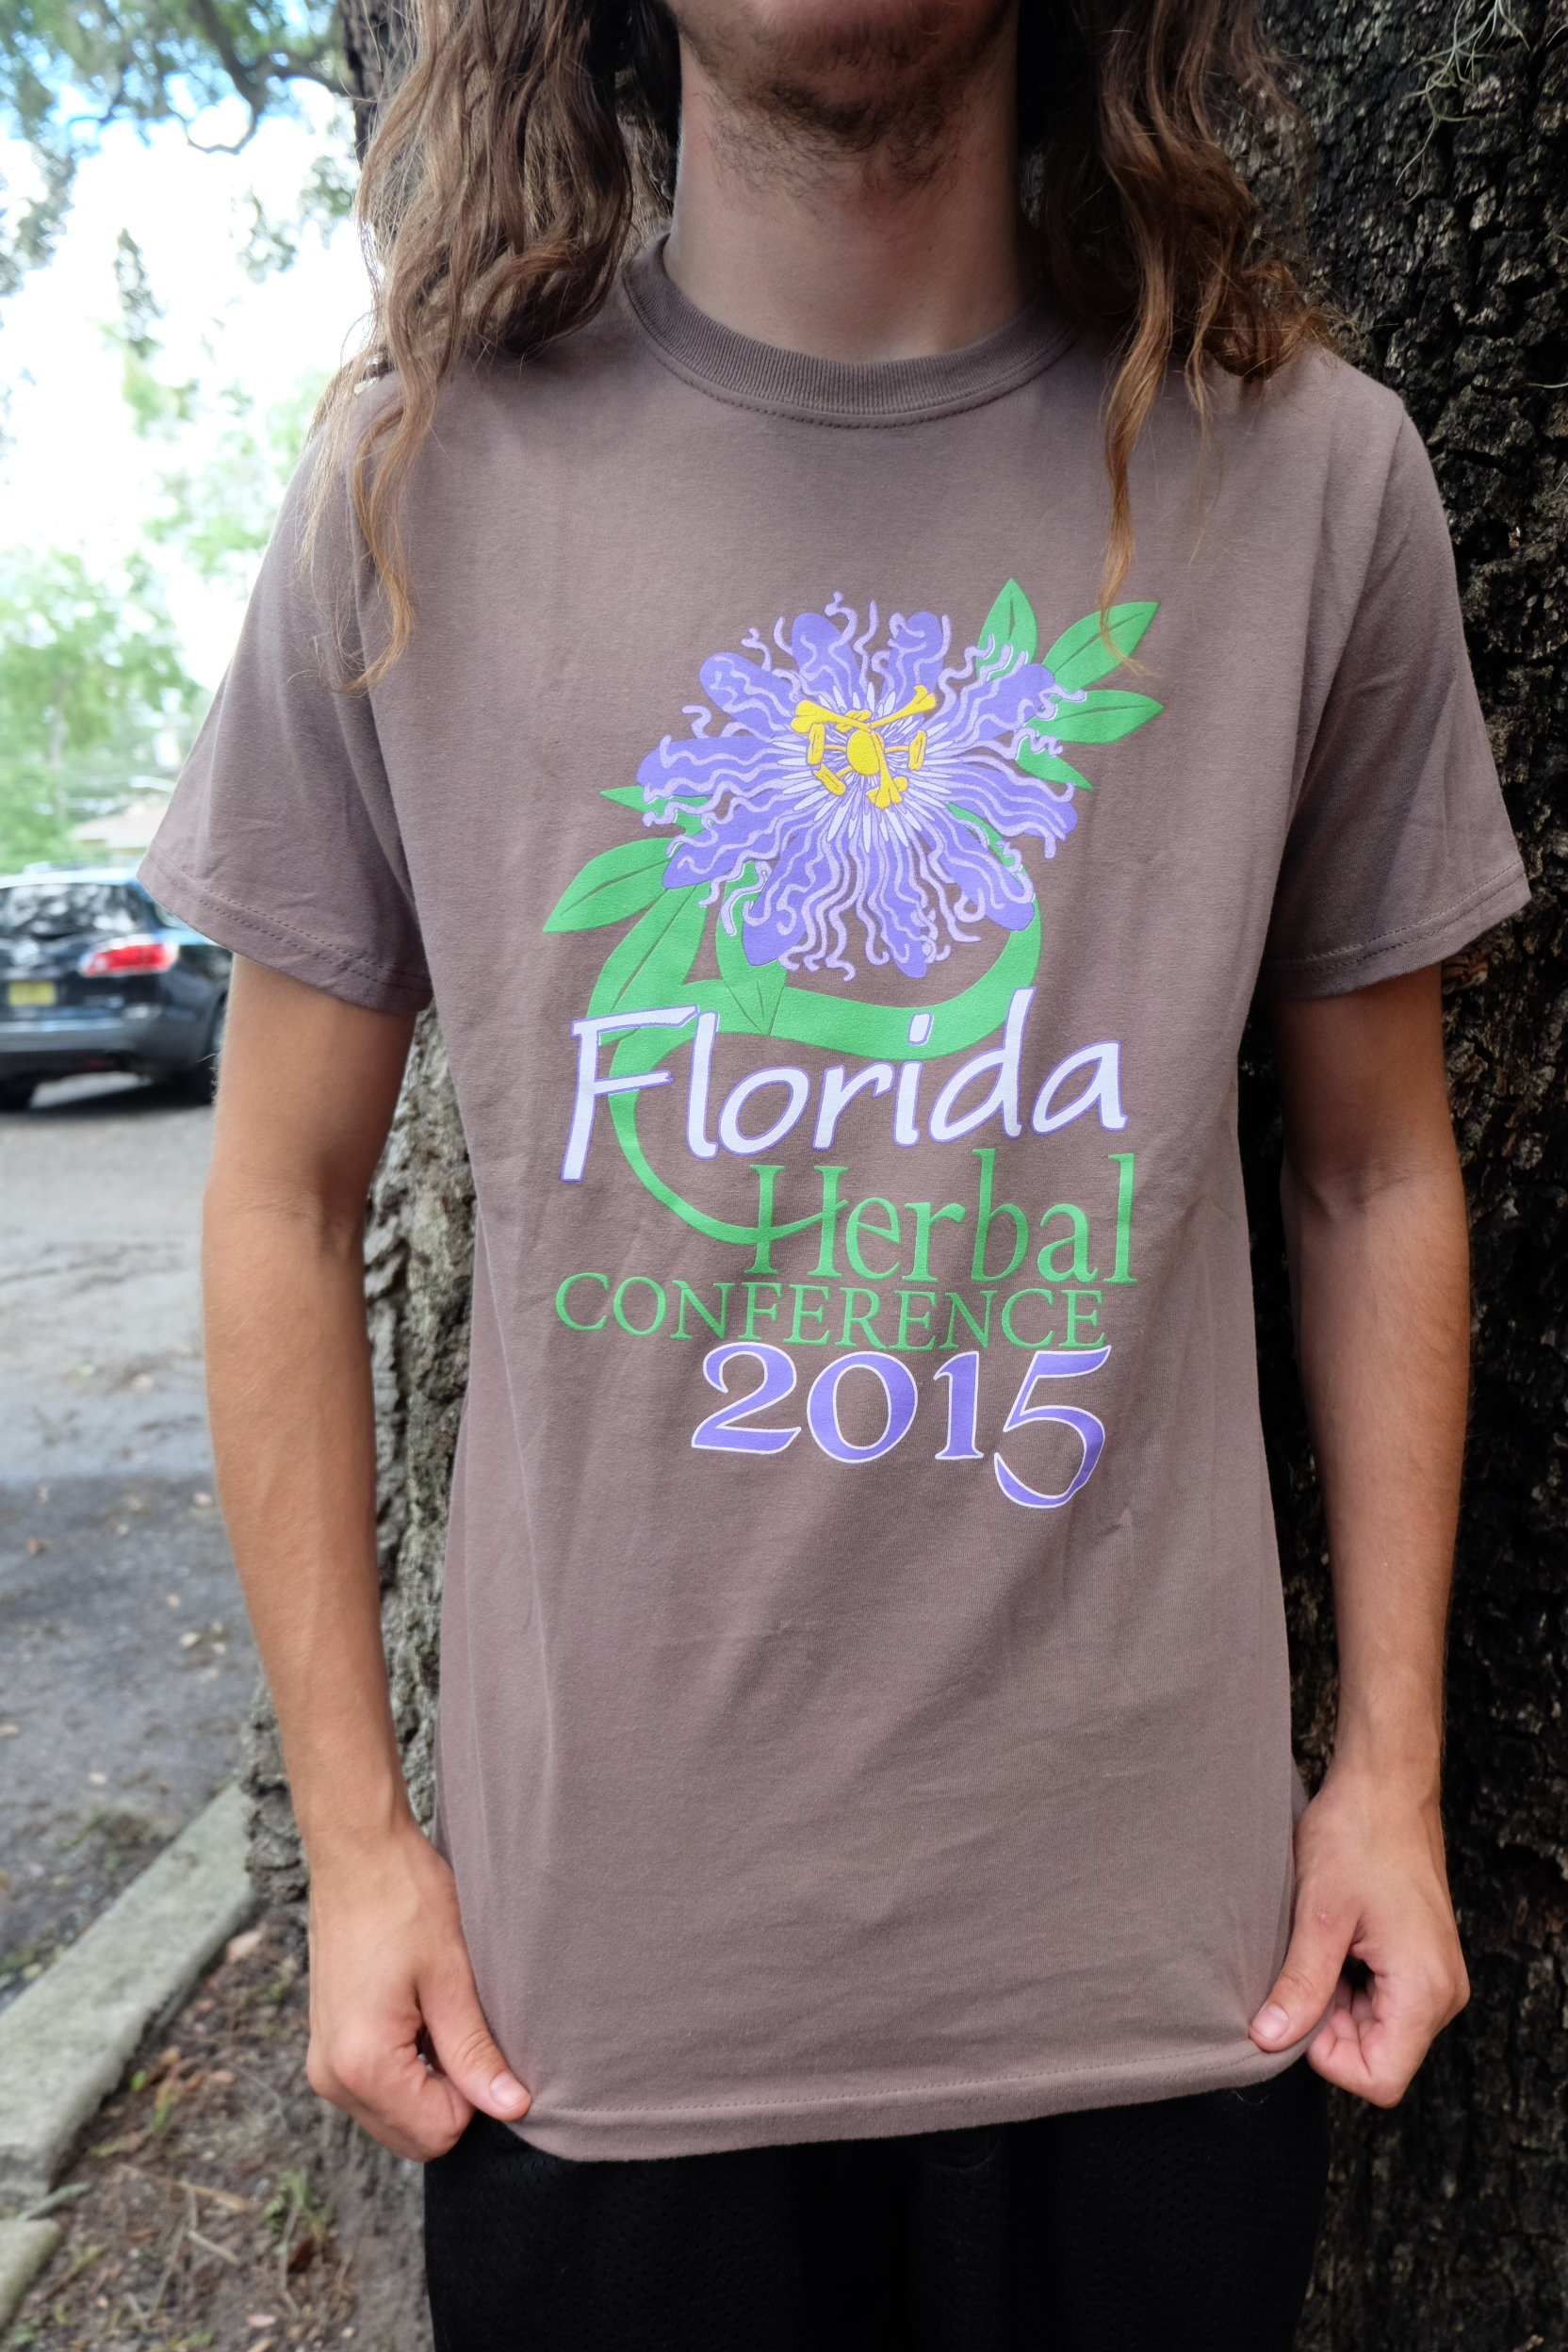 2015 Florida Herbal Conference Tee Shirt